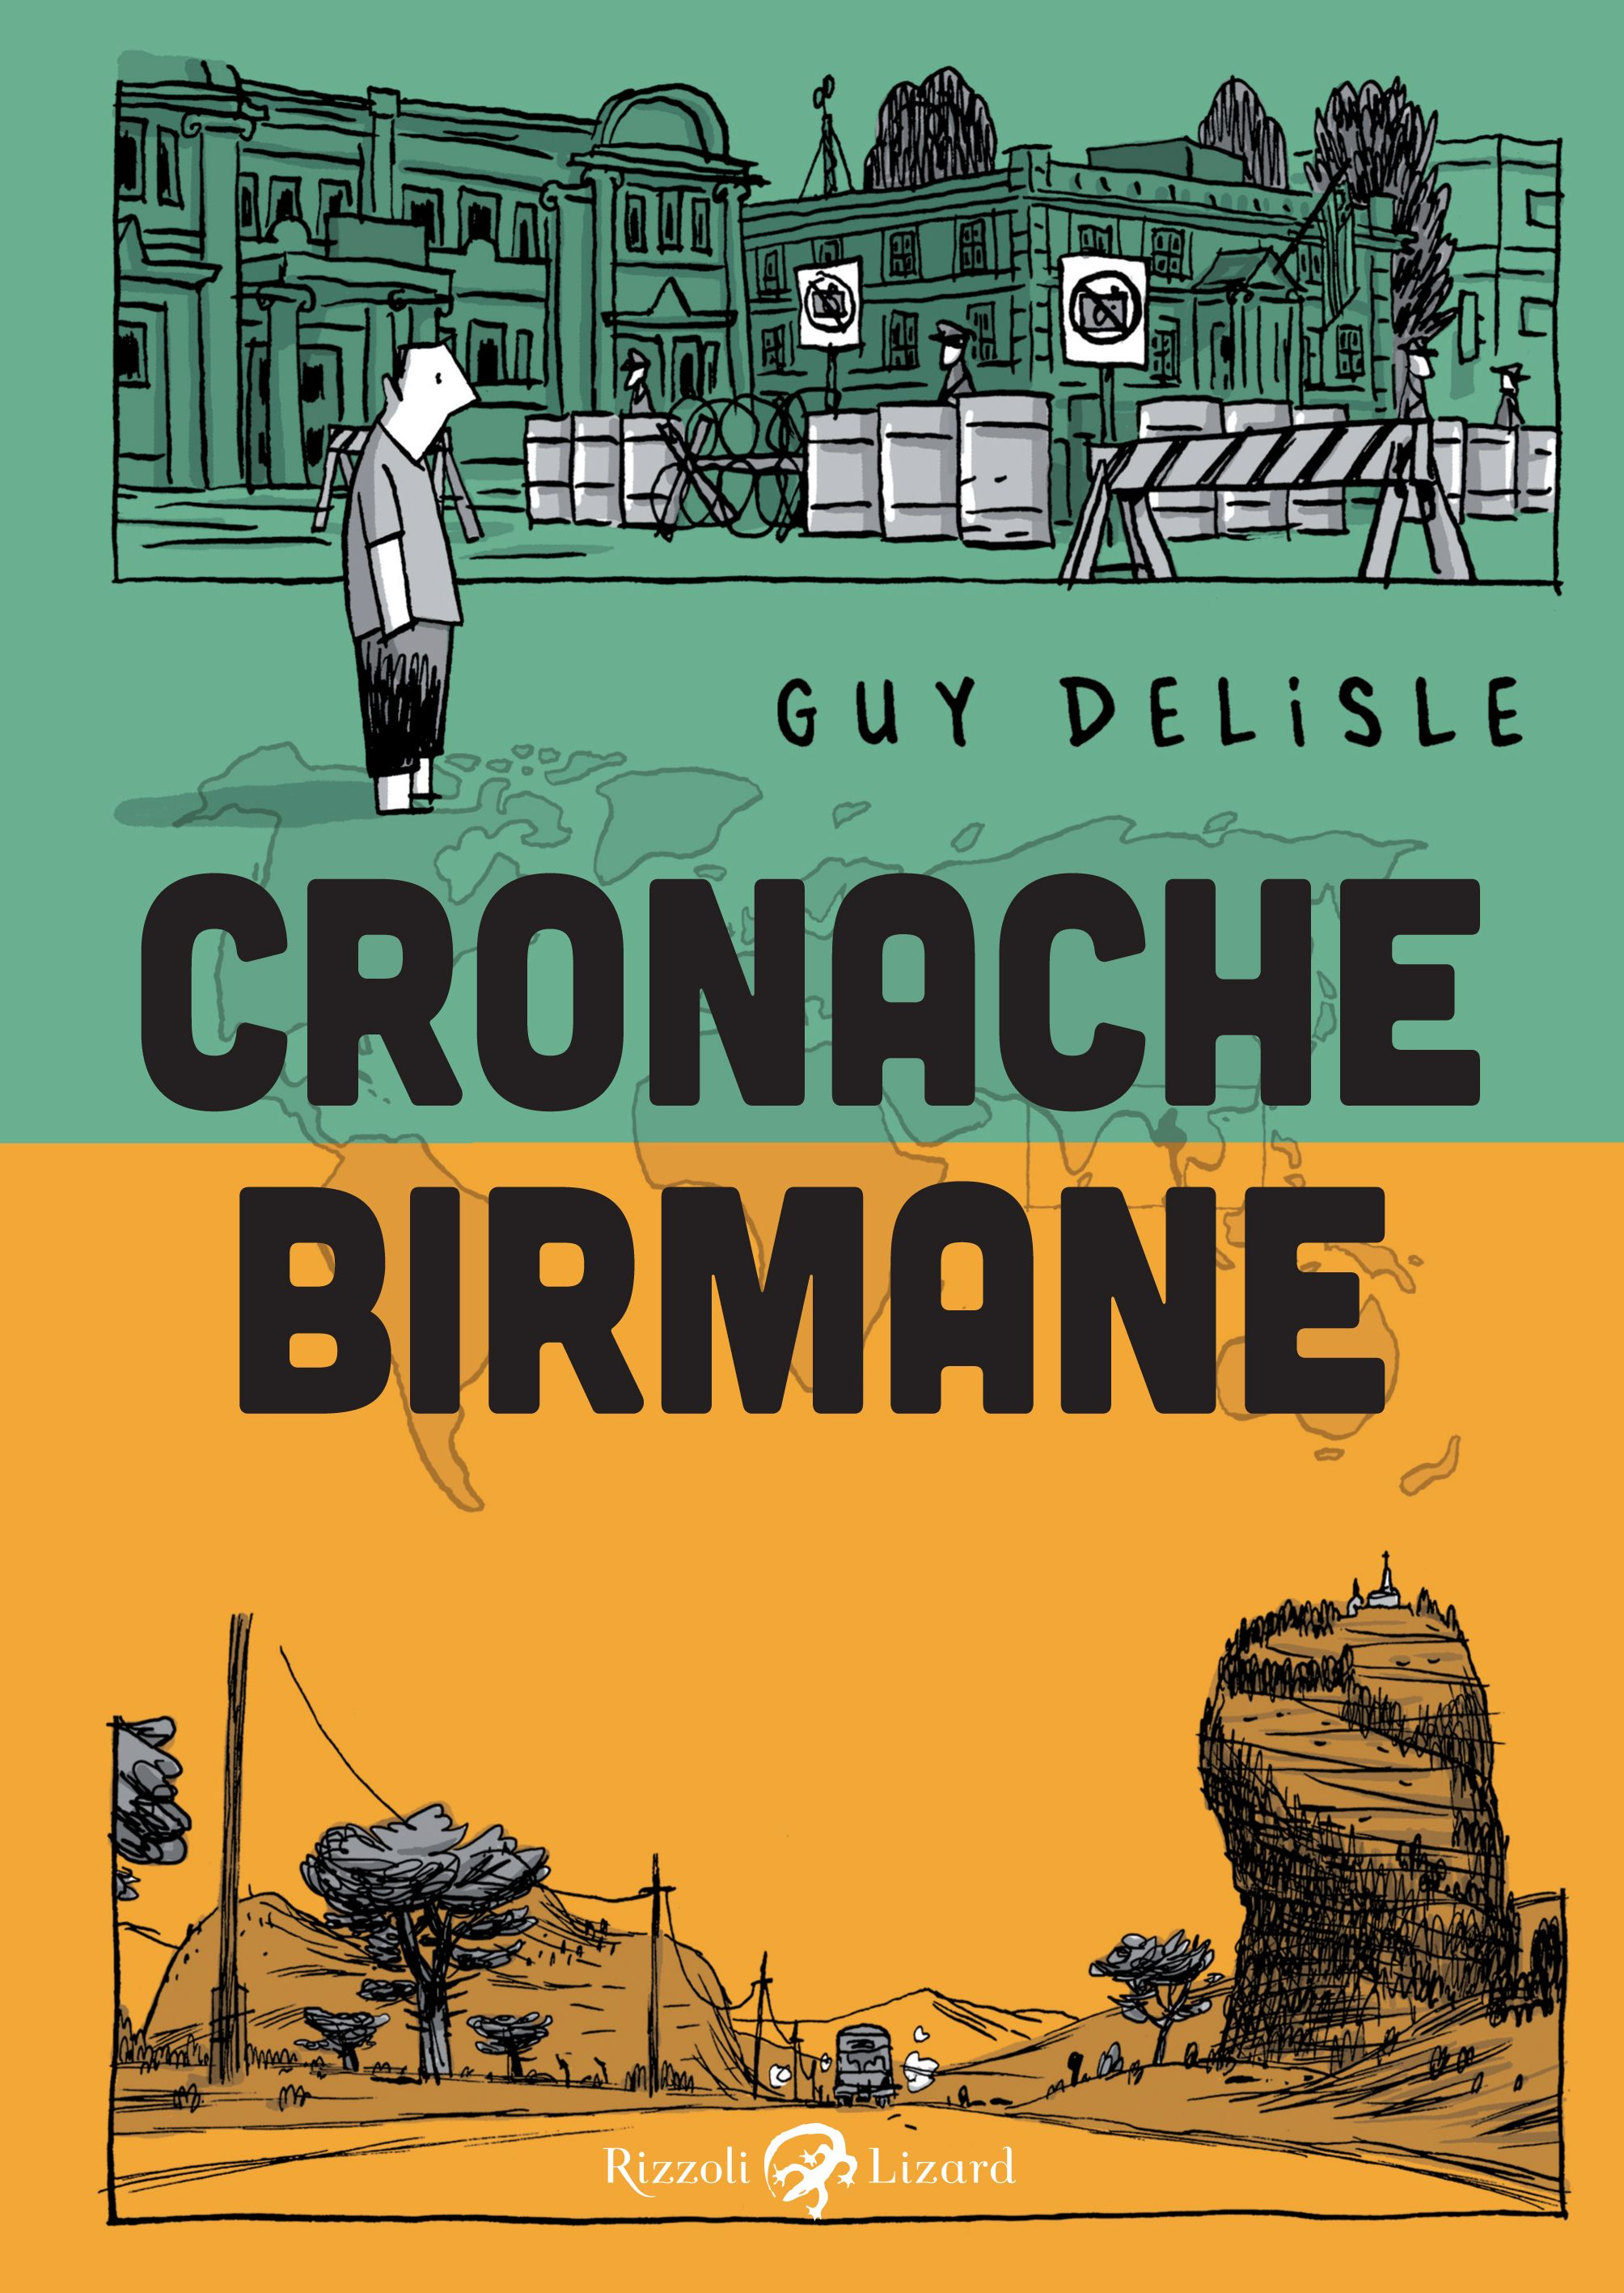 Cronache birmane @Guy Delisle